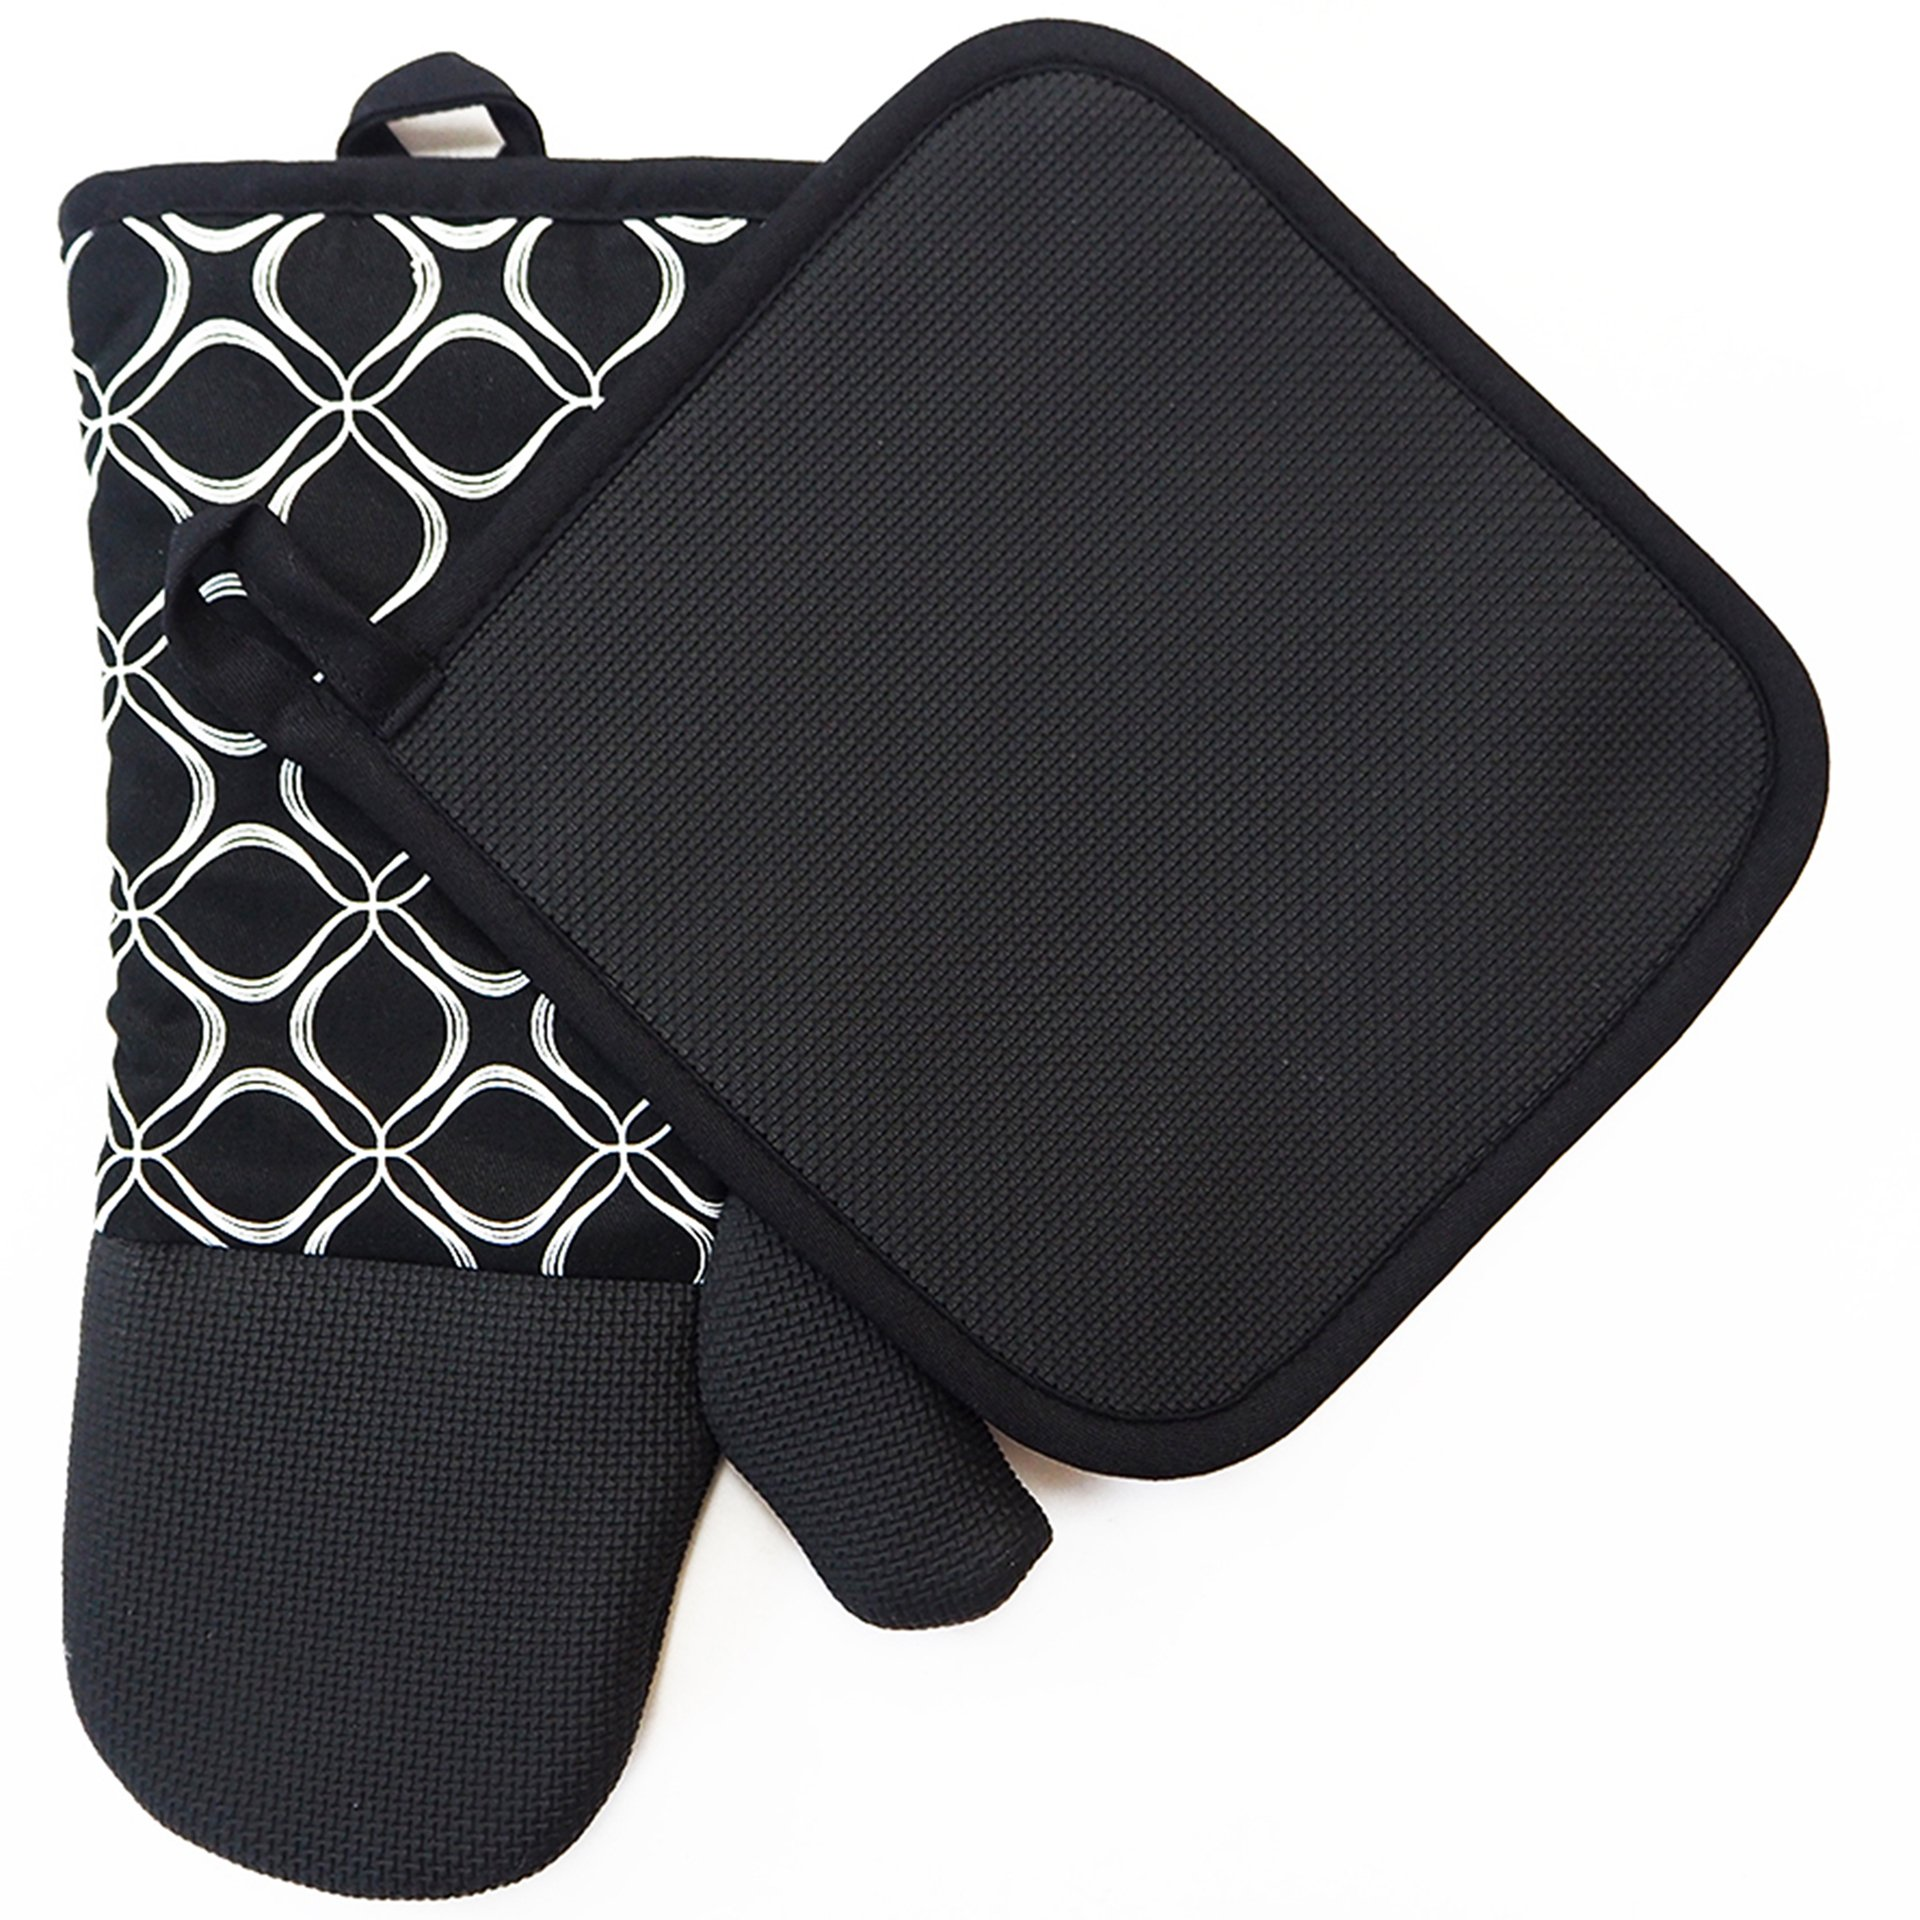 Shaped Oven Mitts and Pot Holders for Kitchen Set With Cotton Neoprene Silicone Non-Slip Grip,Heat Resistant, Set of 2 Oven Gloves for BBQ Cooking Baking, Grilling, Machine Washable (Black Neoprene)